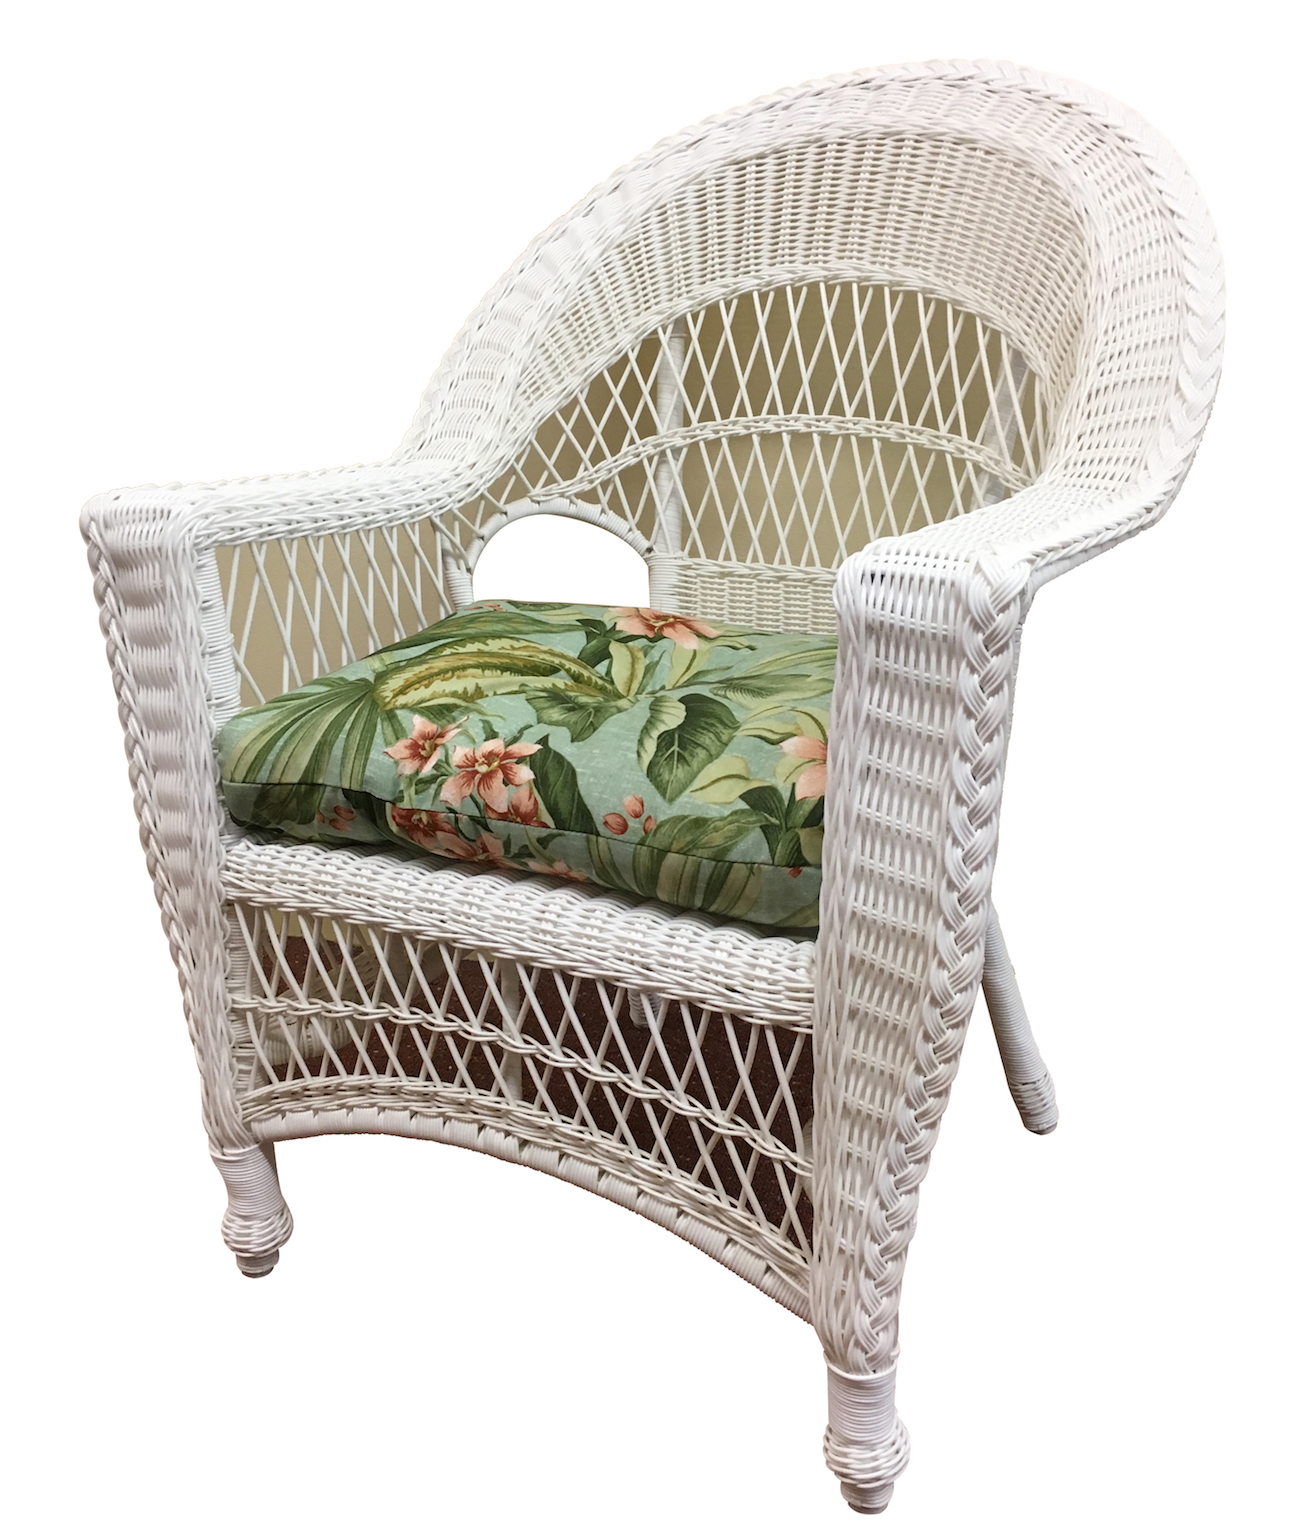 wicker chairs outdoor wicker chair - cape cod IILWSPH